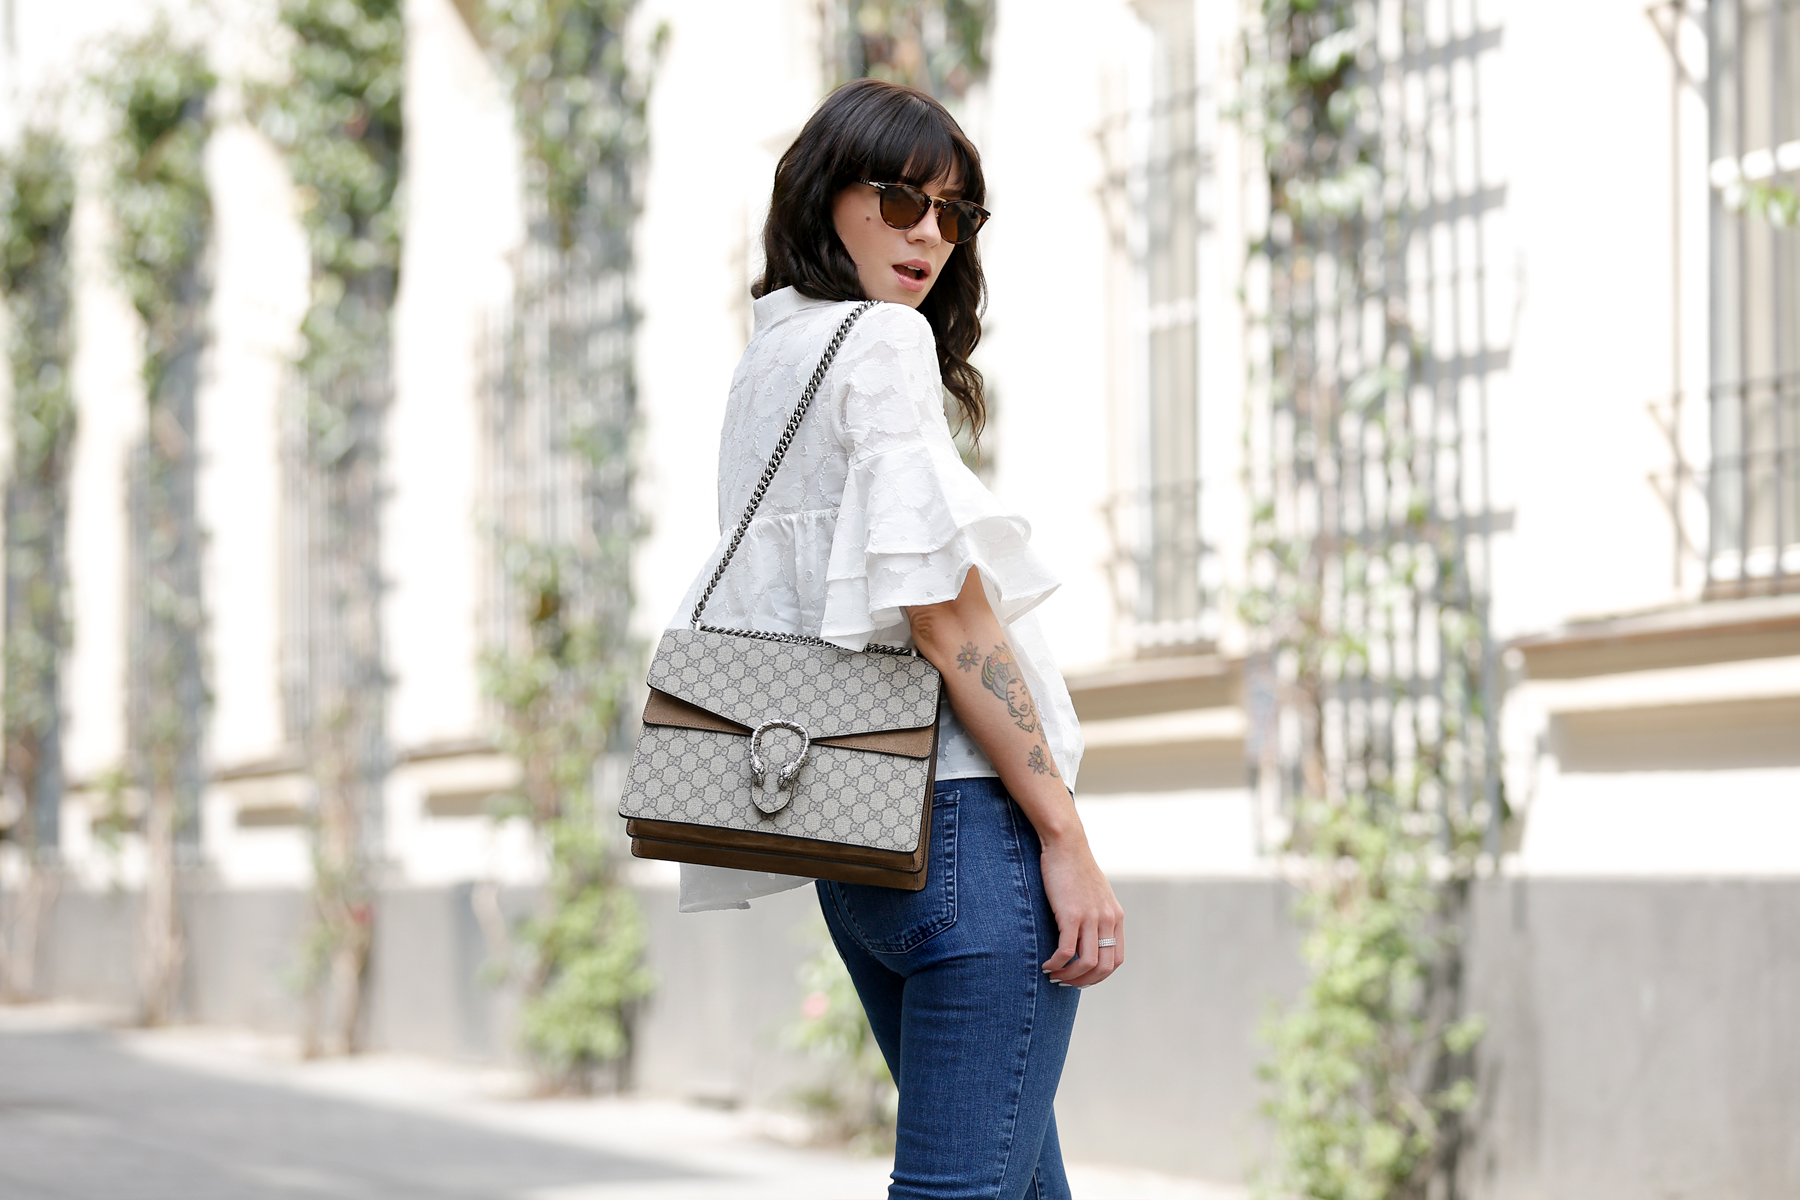 outfit spring summer minimal blue white clean bangs brunette girl cute french parisienne mango fringe jeans denim white blouse shopbop soludos espadrilles gucci dionysus bag luxury fashion modeblog germany ricarda schernus fashionblogger 5